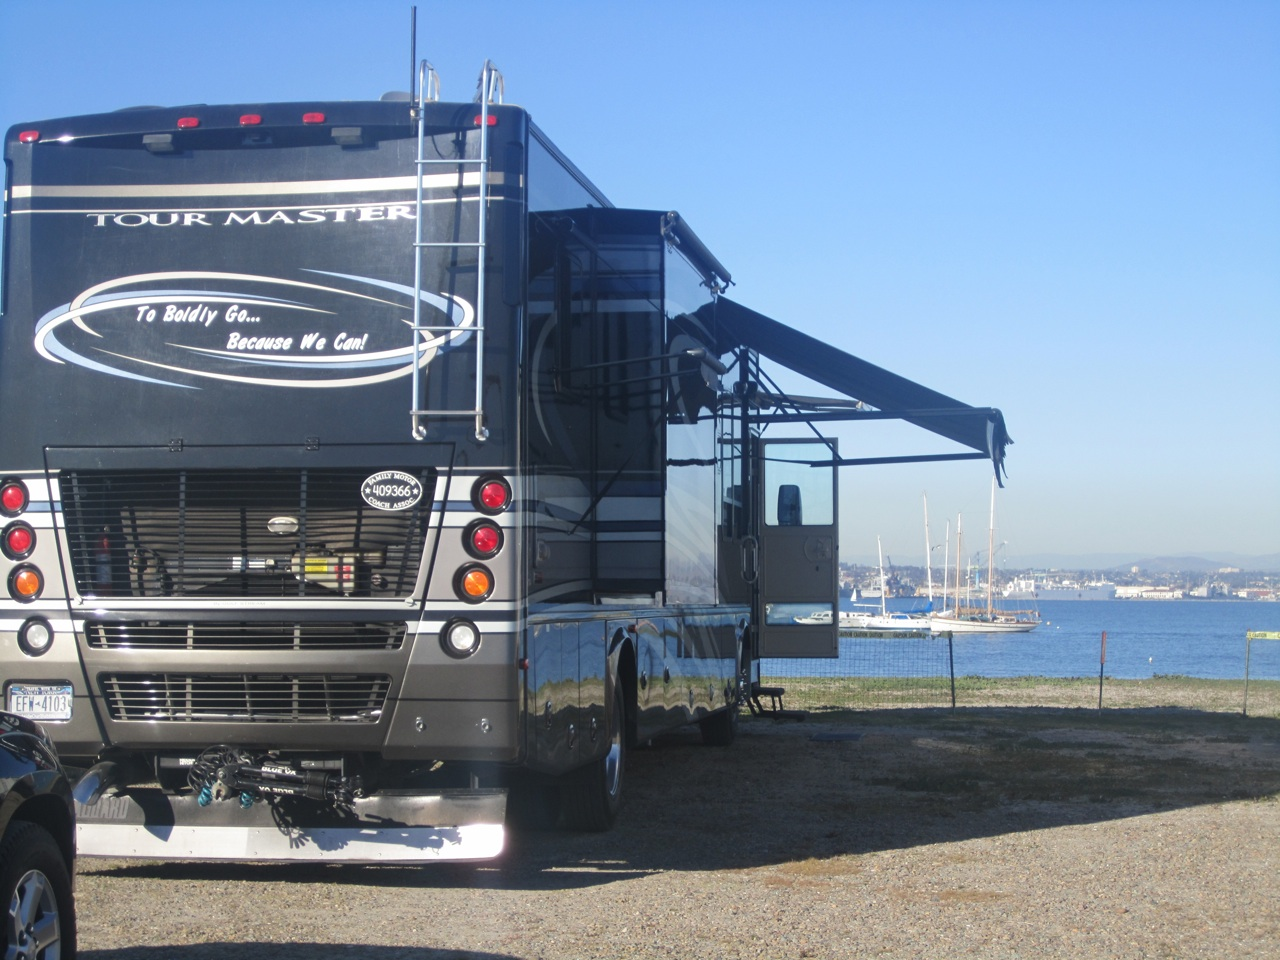 Our Rig Right On The Beach In Coronado, CA